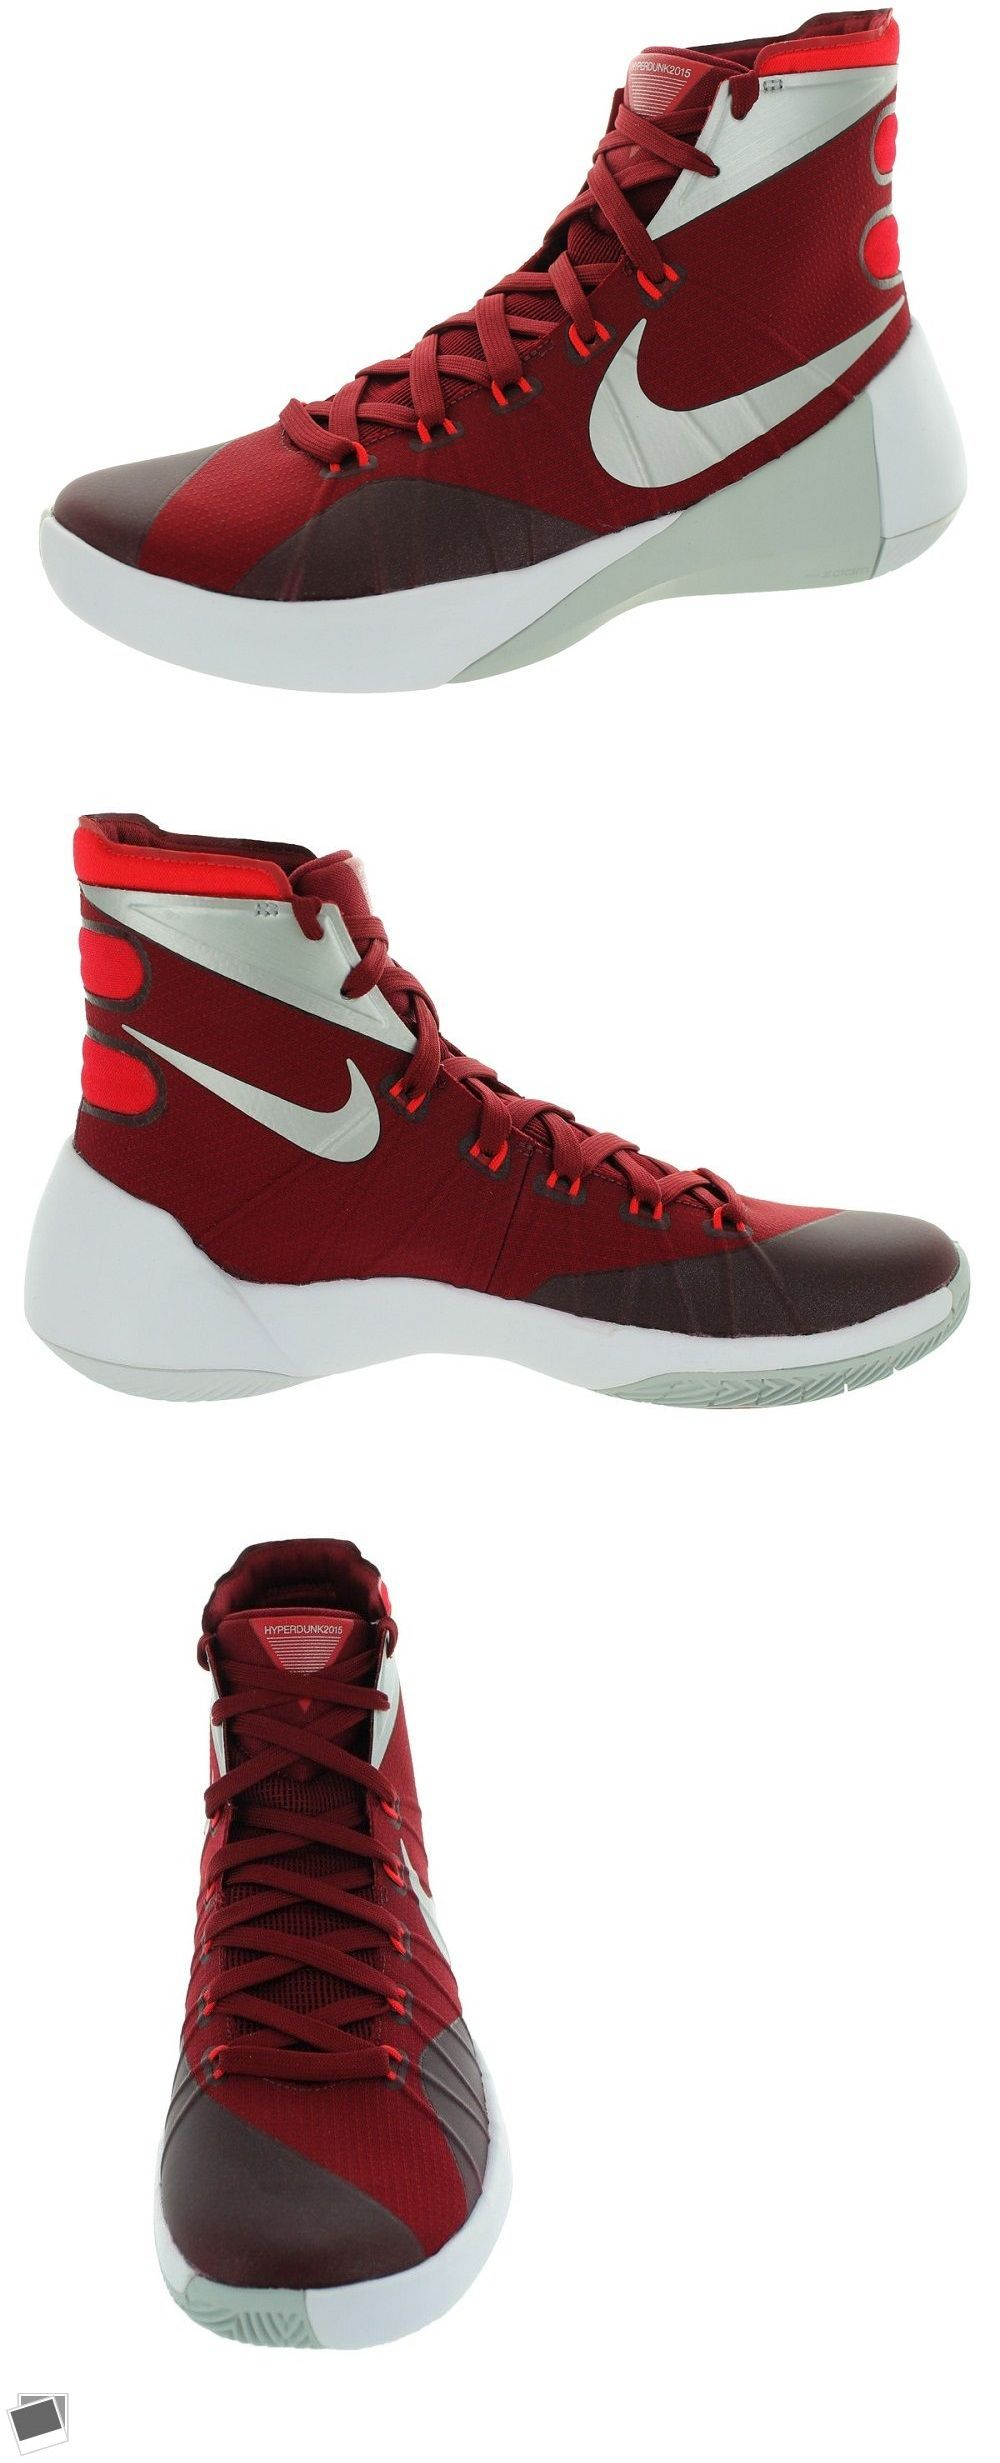 free shipping ab7ba 74c91 Men 158971  Nike Mens Hyperdunk 2015 Tb Basketball Shoe 749645 606 Red  Silver